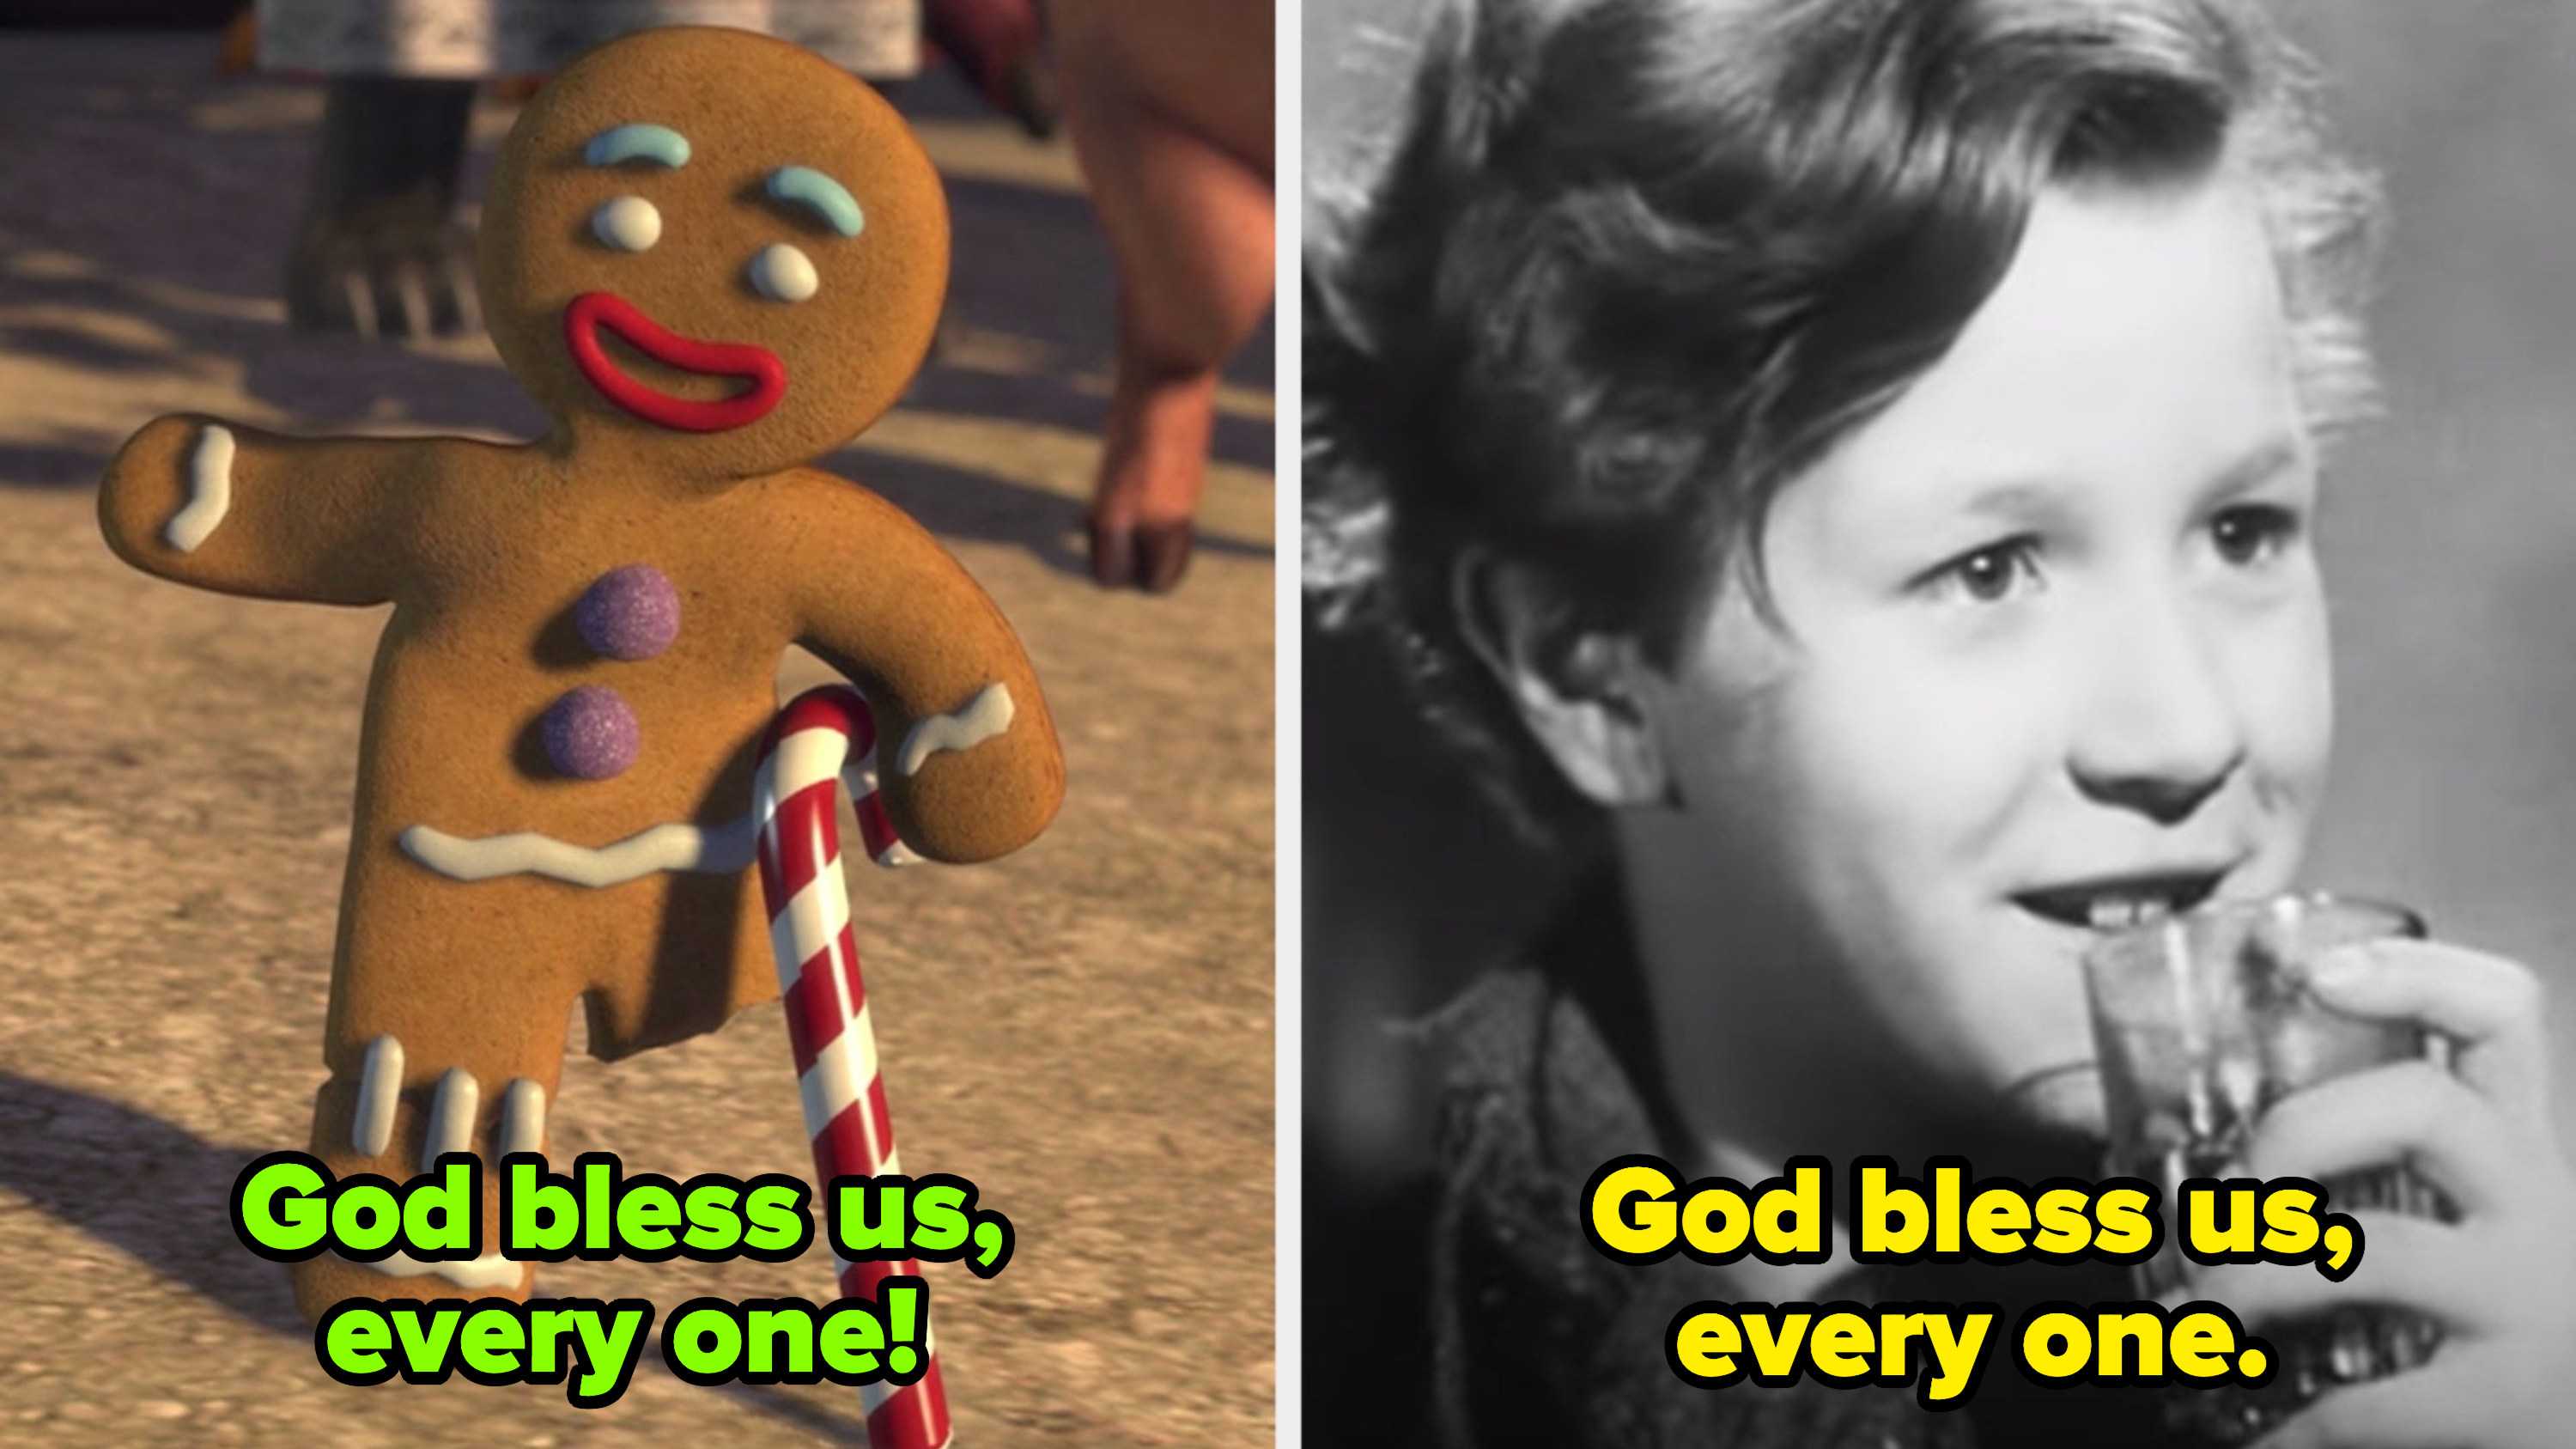 """Gingy wobbling on one gingerbread leg, saying: """"God bless us, every one!;"""" Tiny Tim holding a glass, saying: """"God bless us, every one"""""""